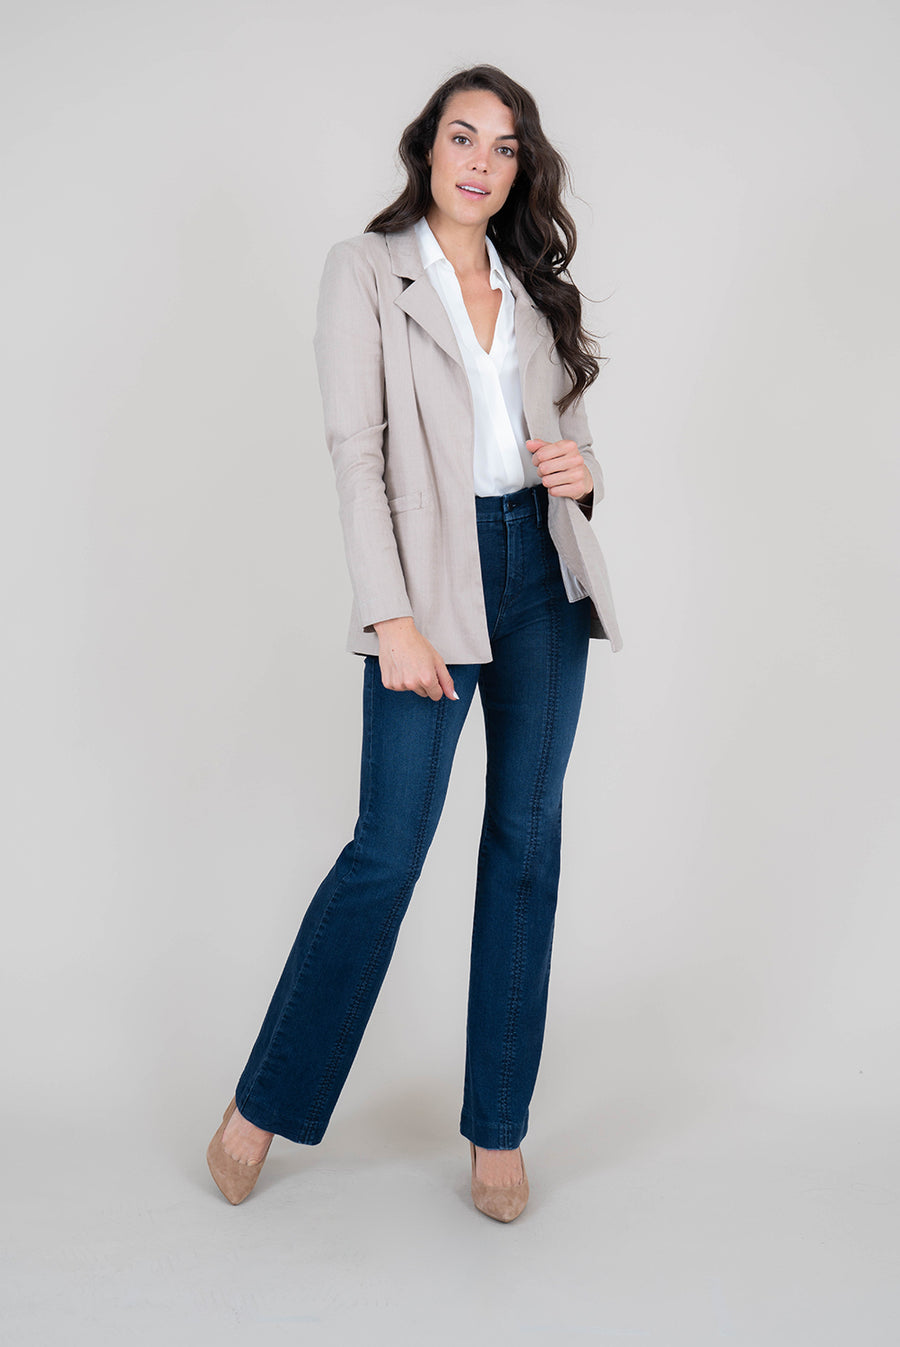 Rachel Stretch Linen Blazer - level99jeans